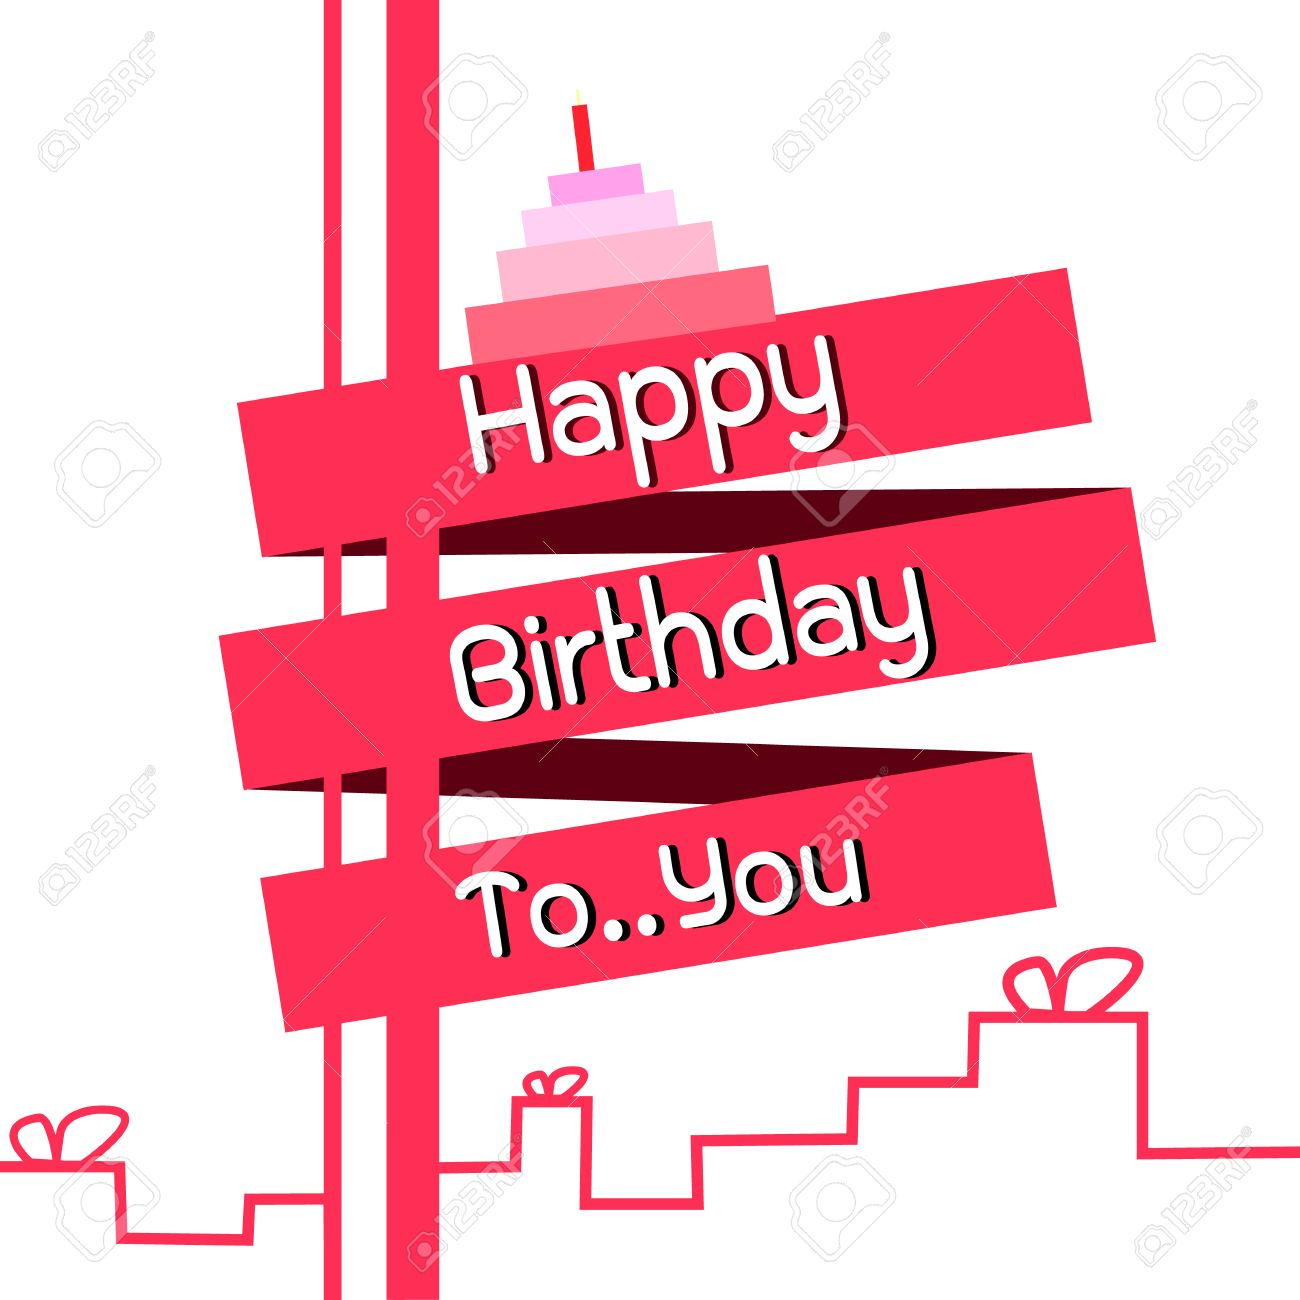 happy birthday card design template ; 37843721-happy-birthday-card-design-template